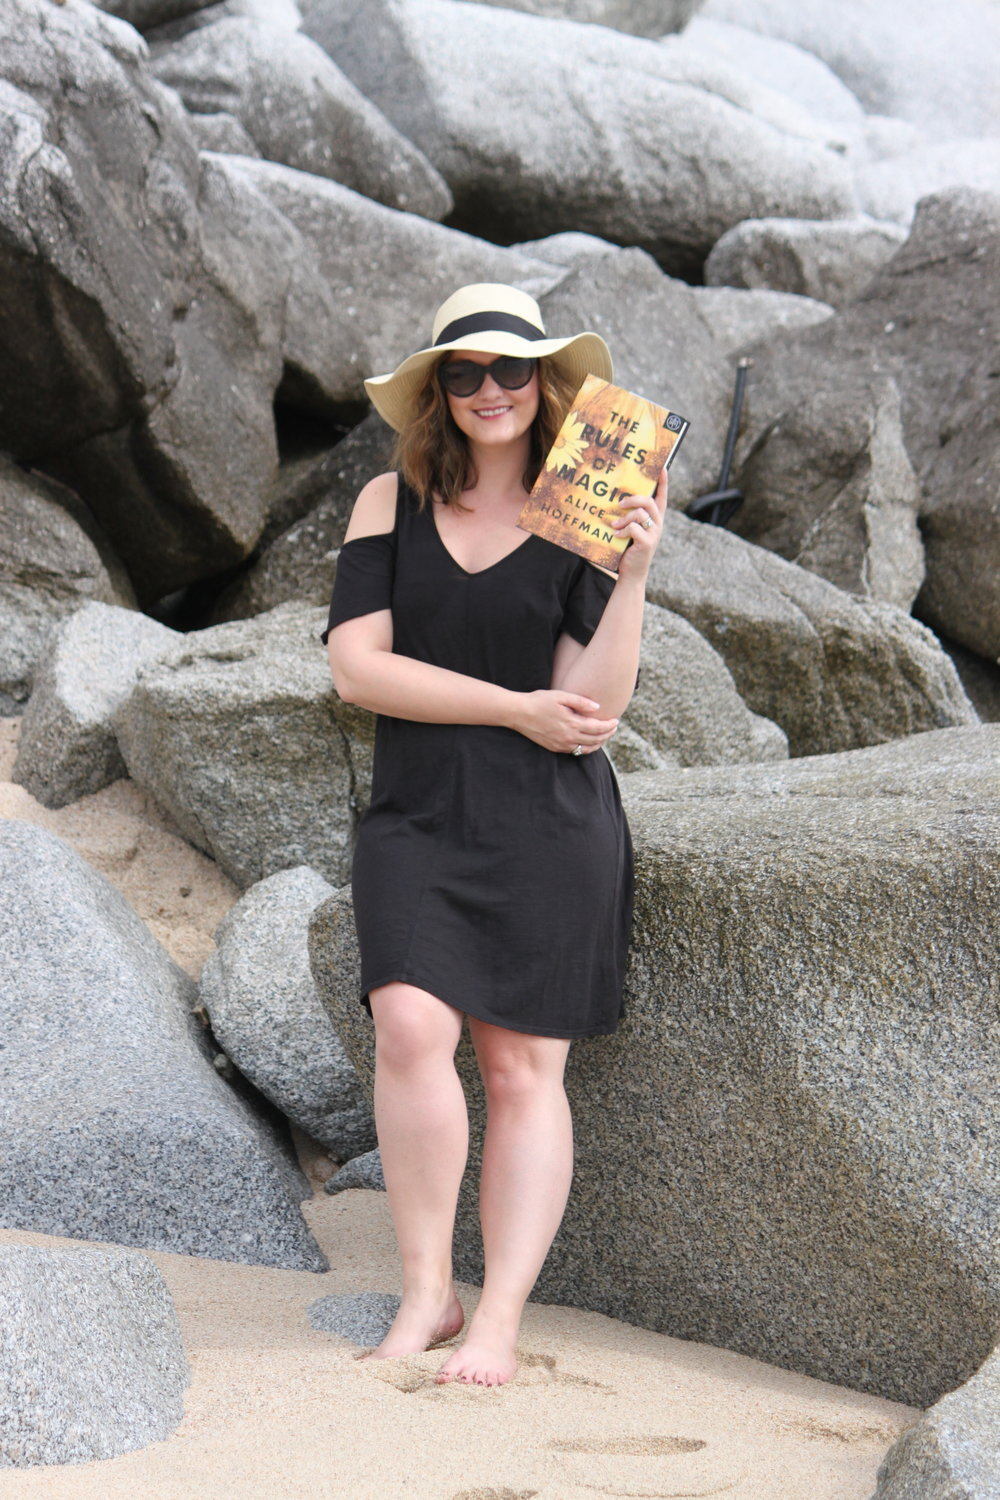 Reading The Rules of Magic by Alice Hoffman at Sirena del Mar in Cabo, Mexico